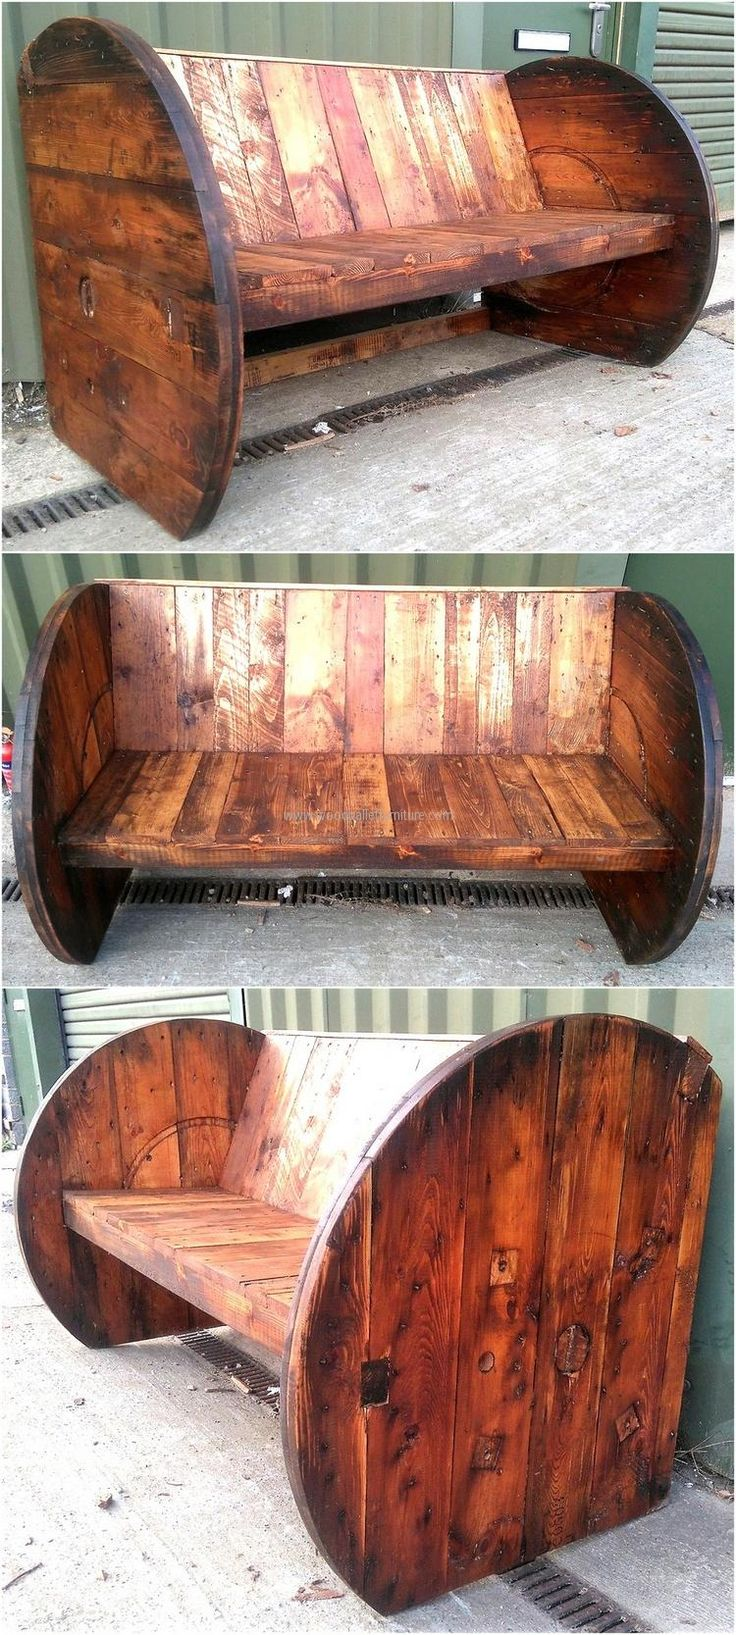 815 Best Images About Re Scape Outdoor Furniture On Pinterest